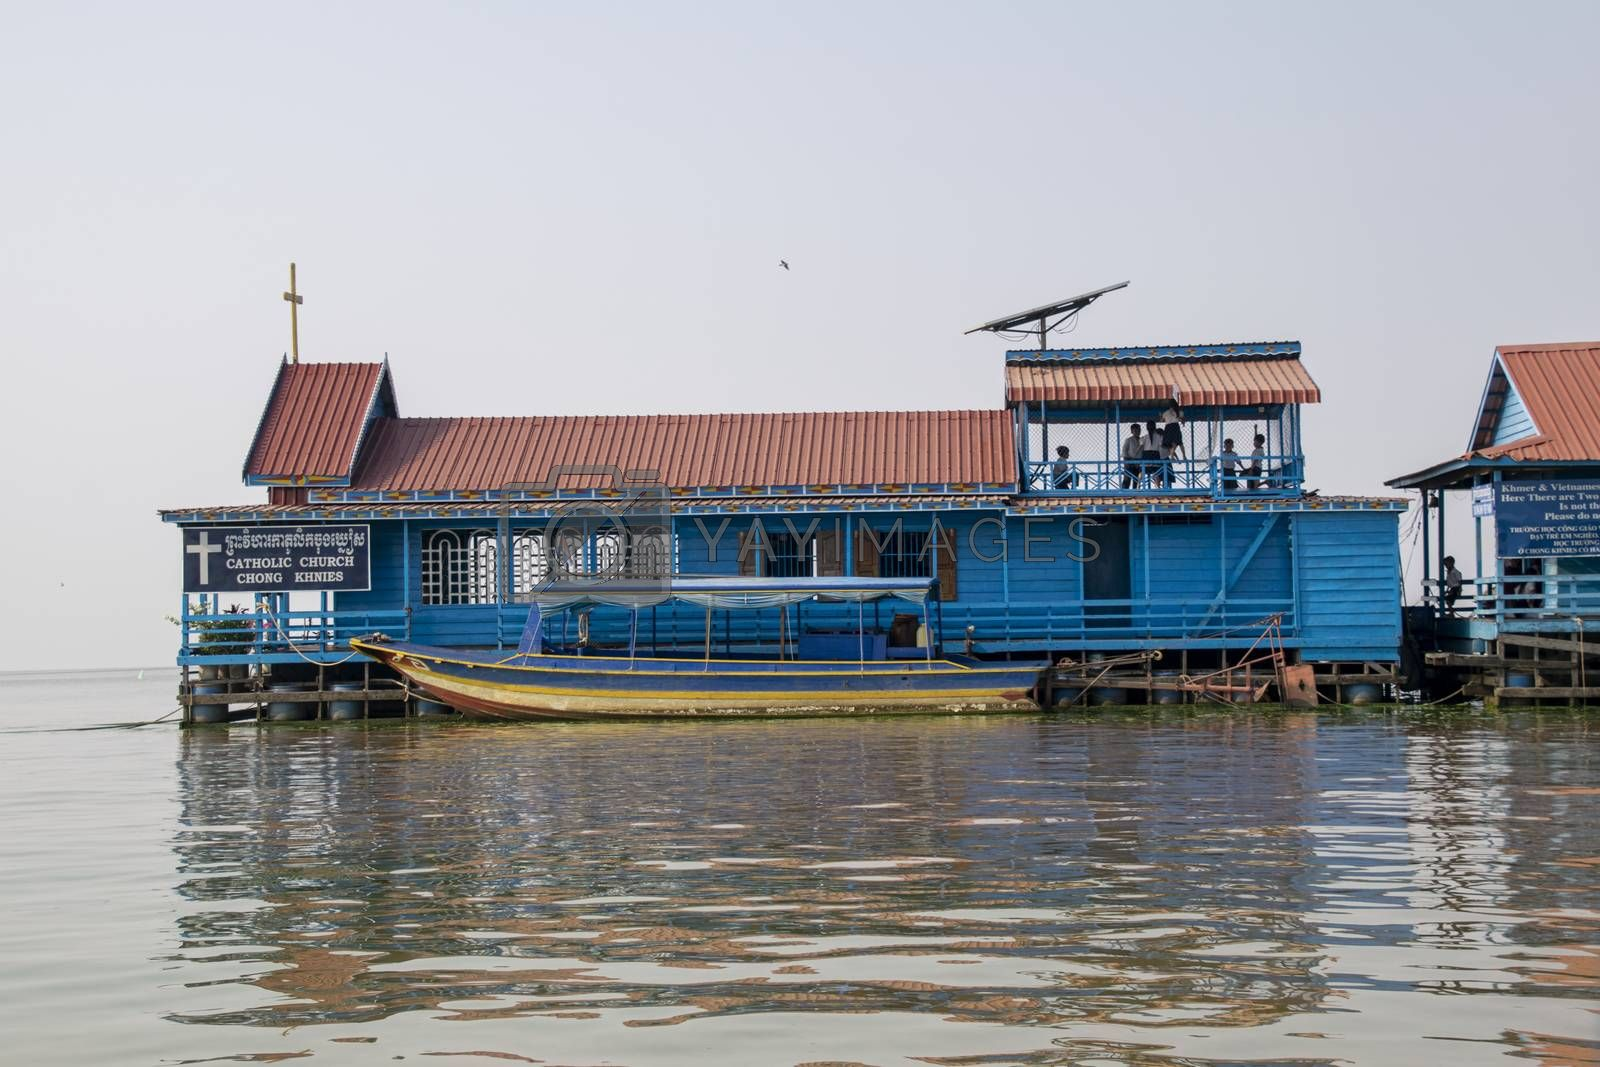 Cambodia, Tonle Sap Floating Village - March 2016: Children playing on the deck of this floating Church which doubles as a school house